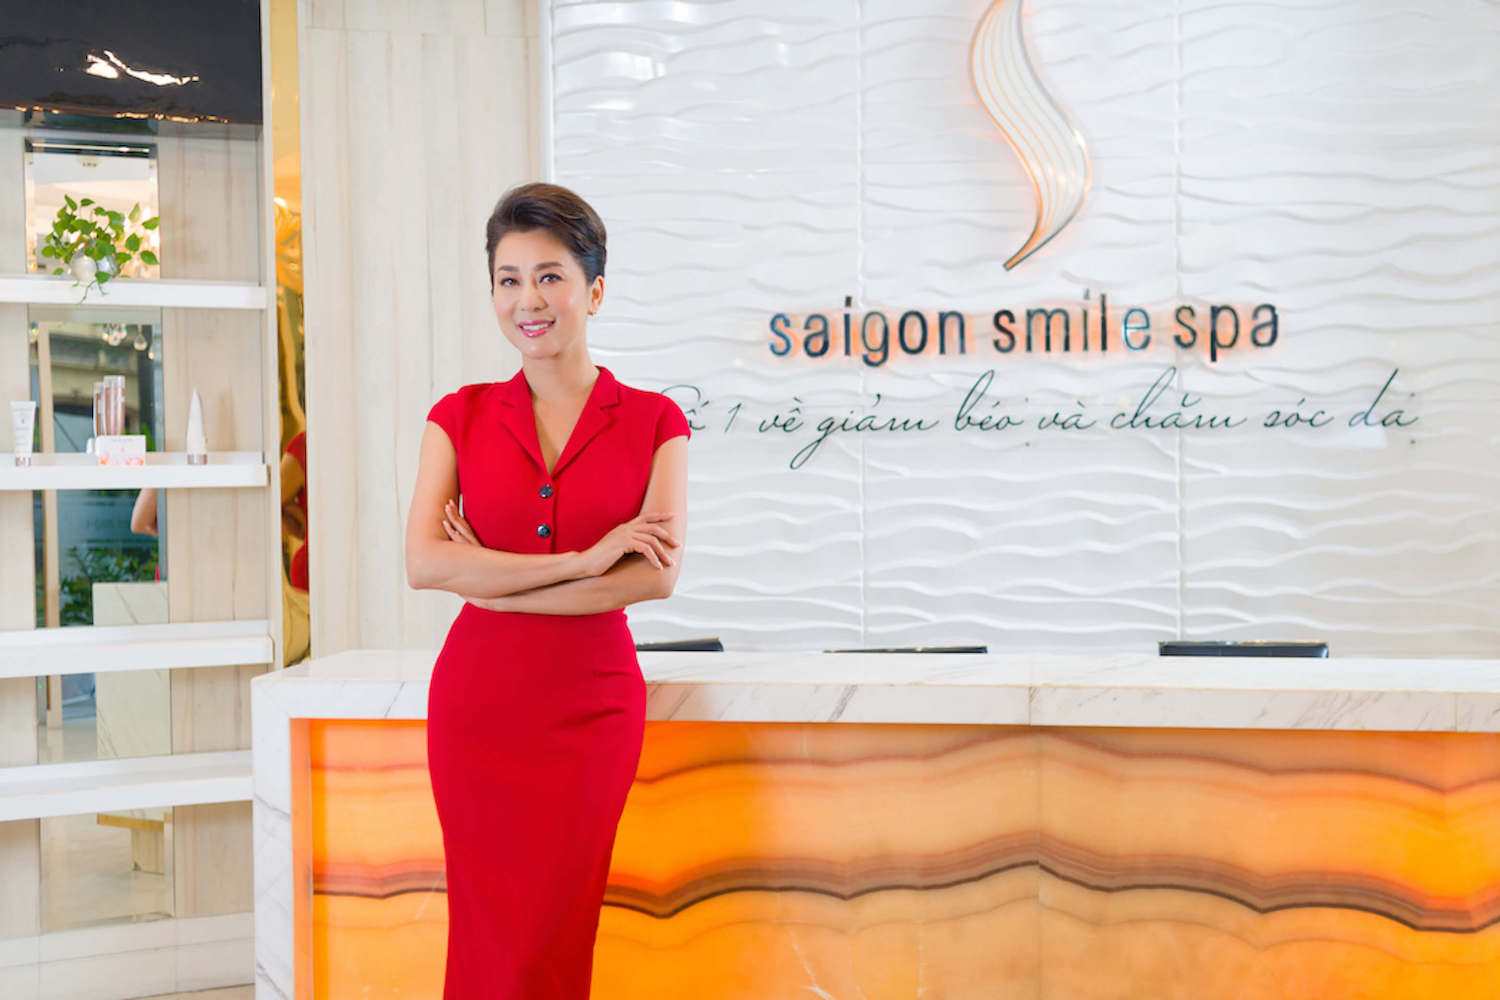 Pano Saigon Smile Spa